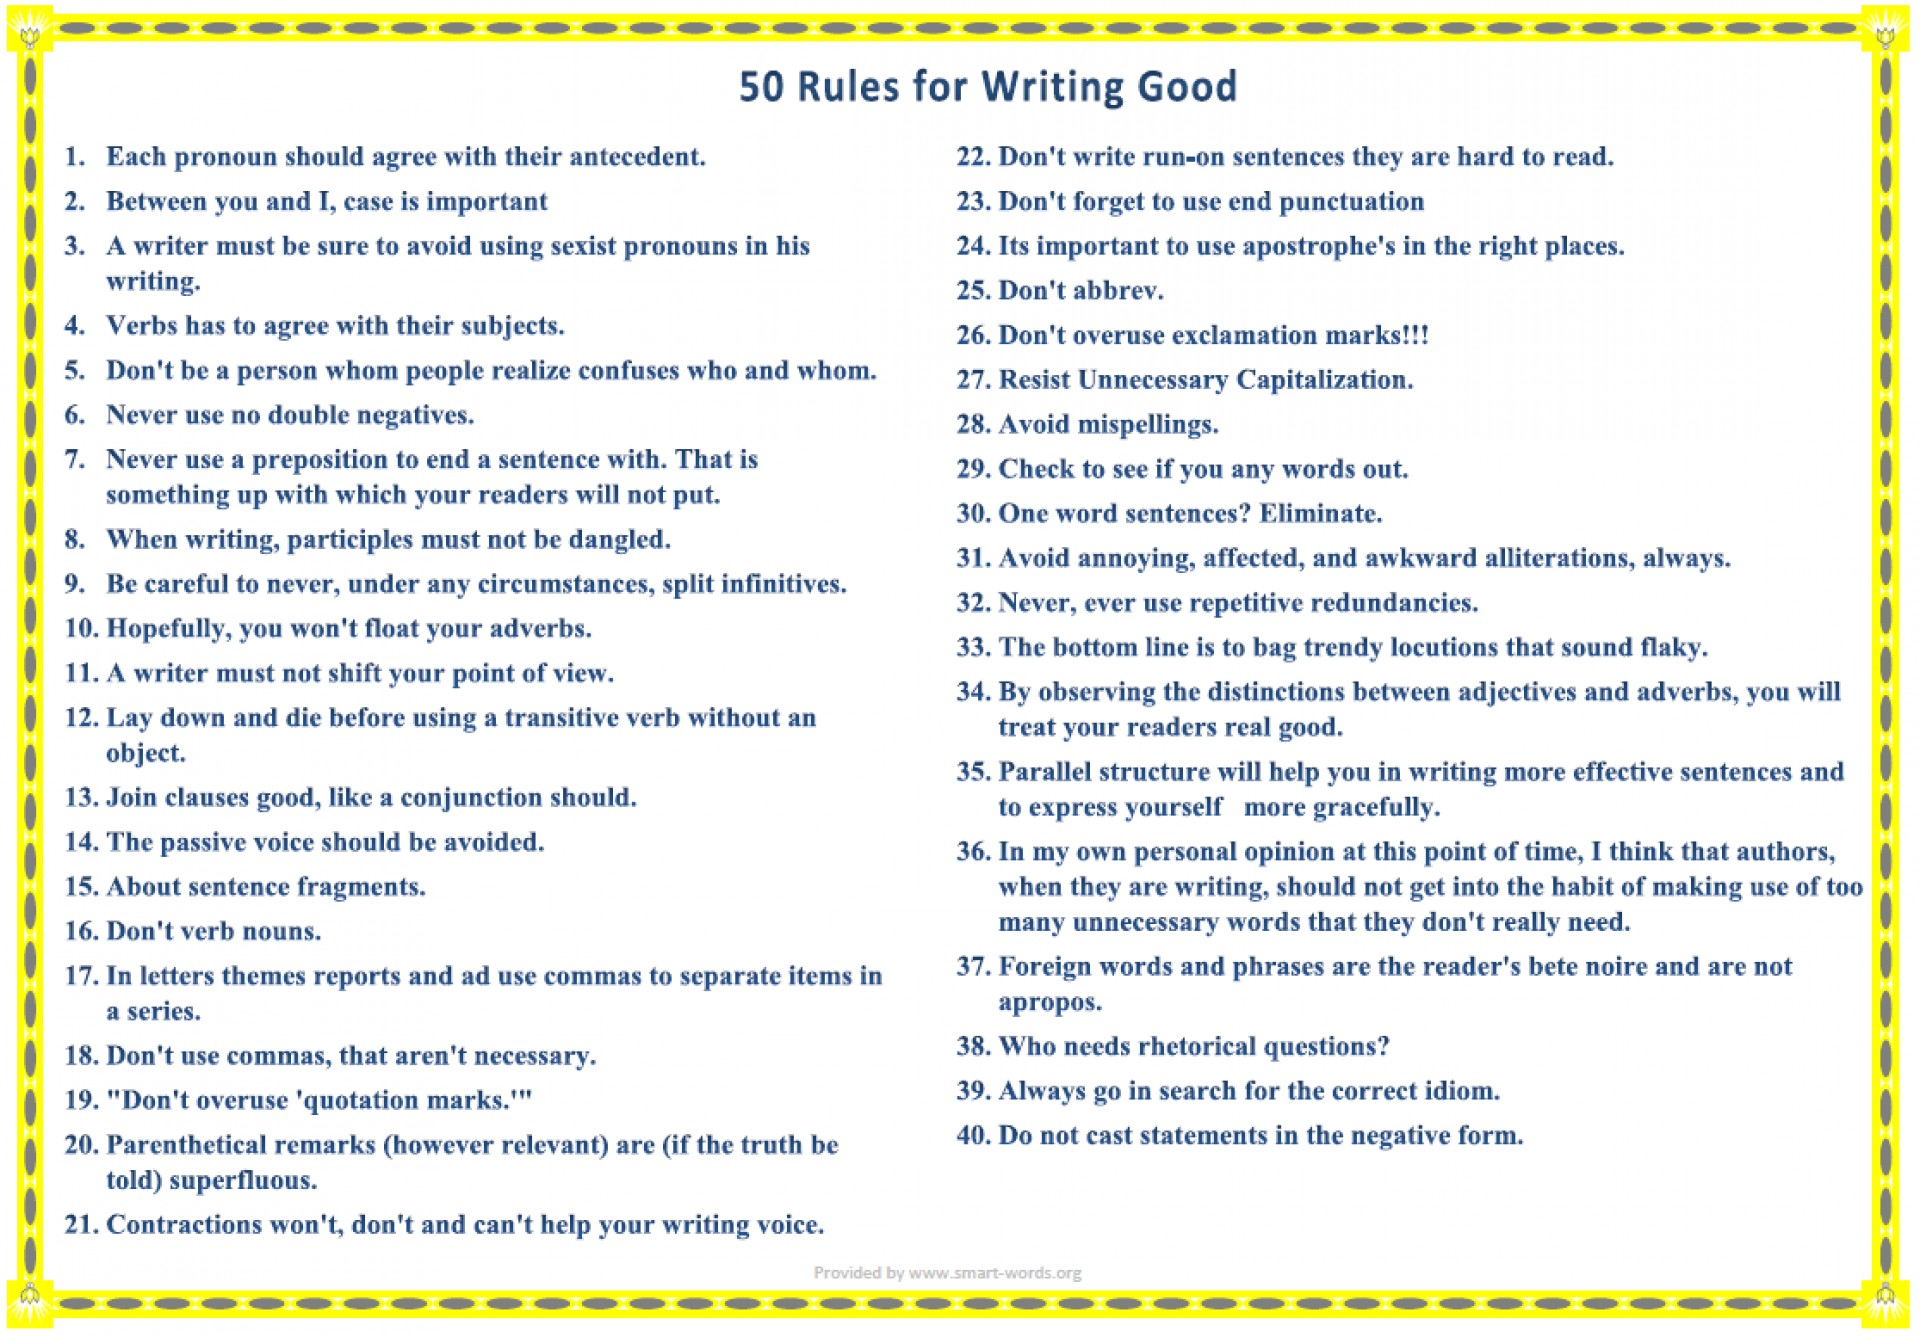 007 Essay Example Rules For Writing Good How To Write An In Outstanding English Upsc Exam 1920